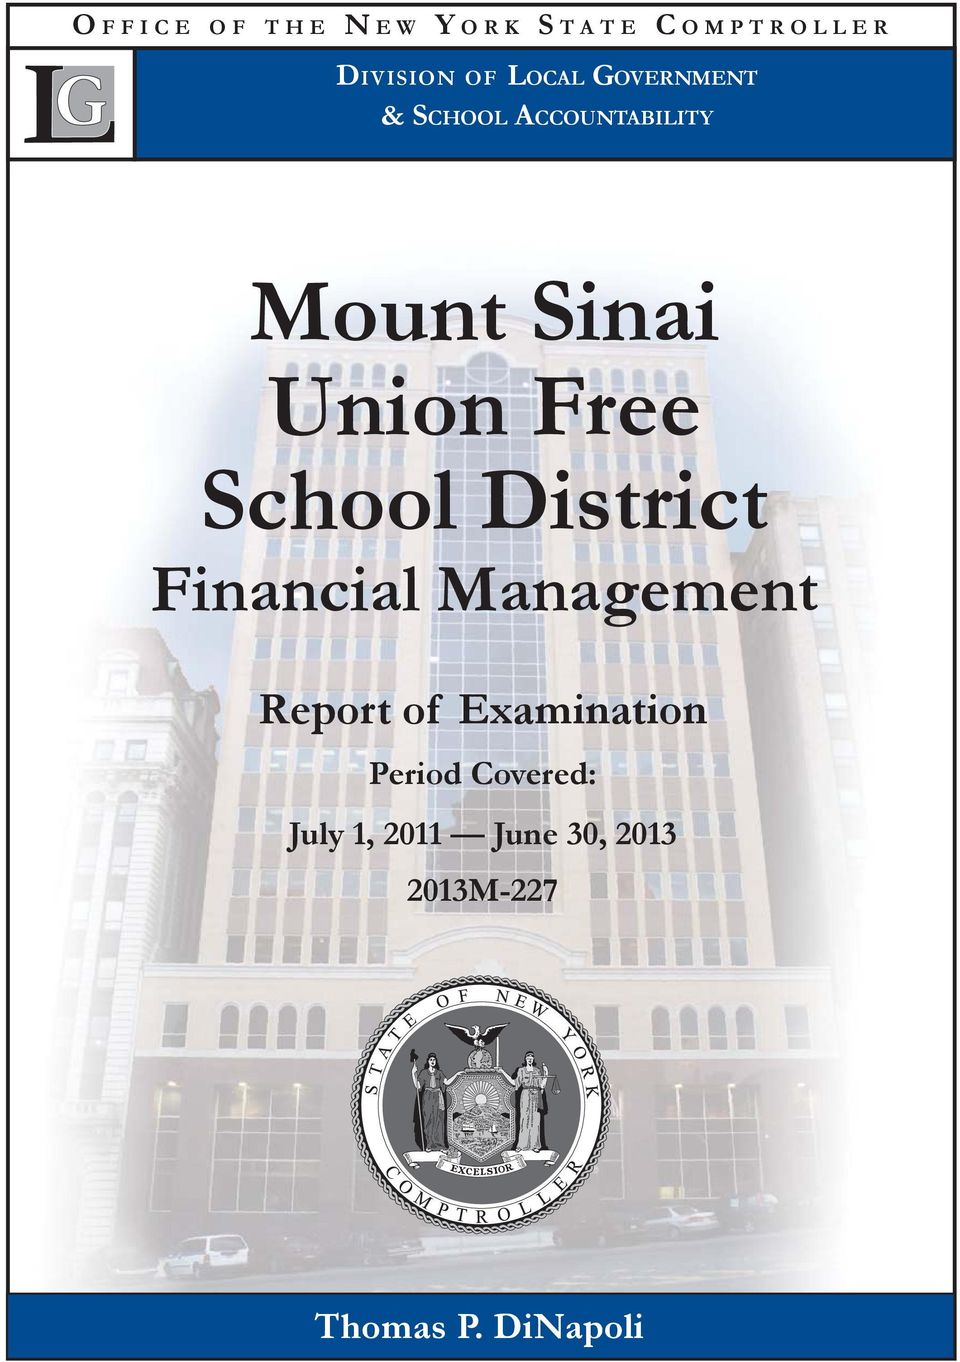 School District Financial Management Report of Examination